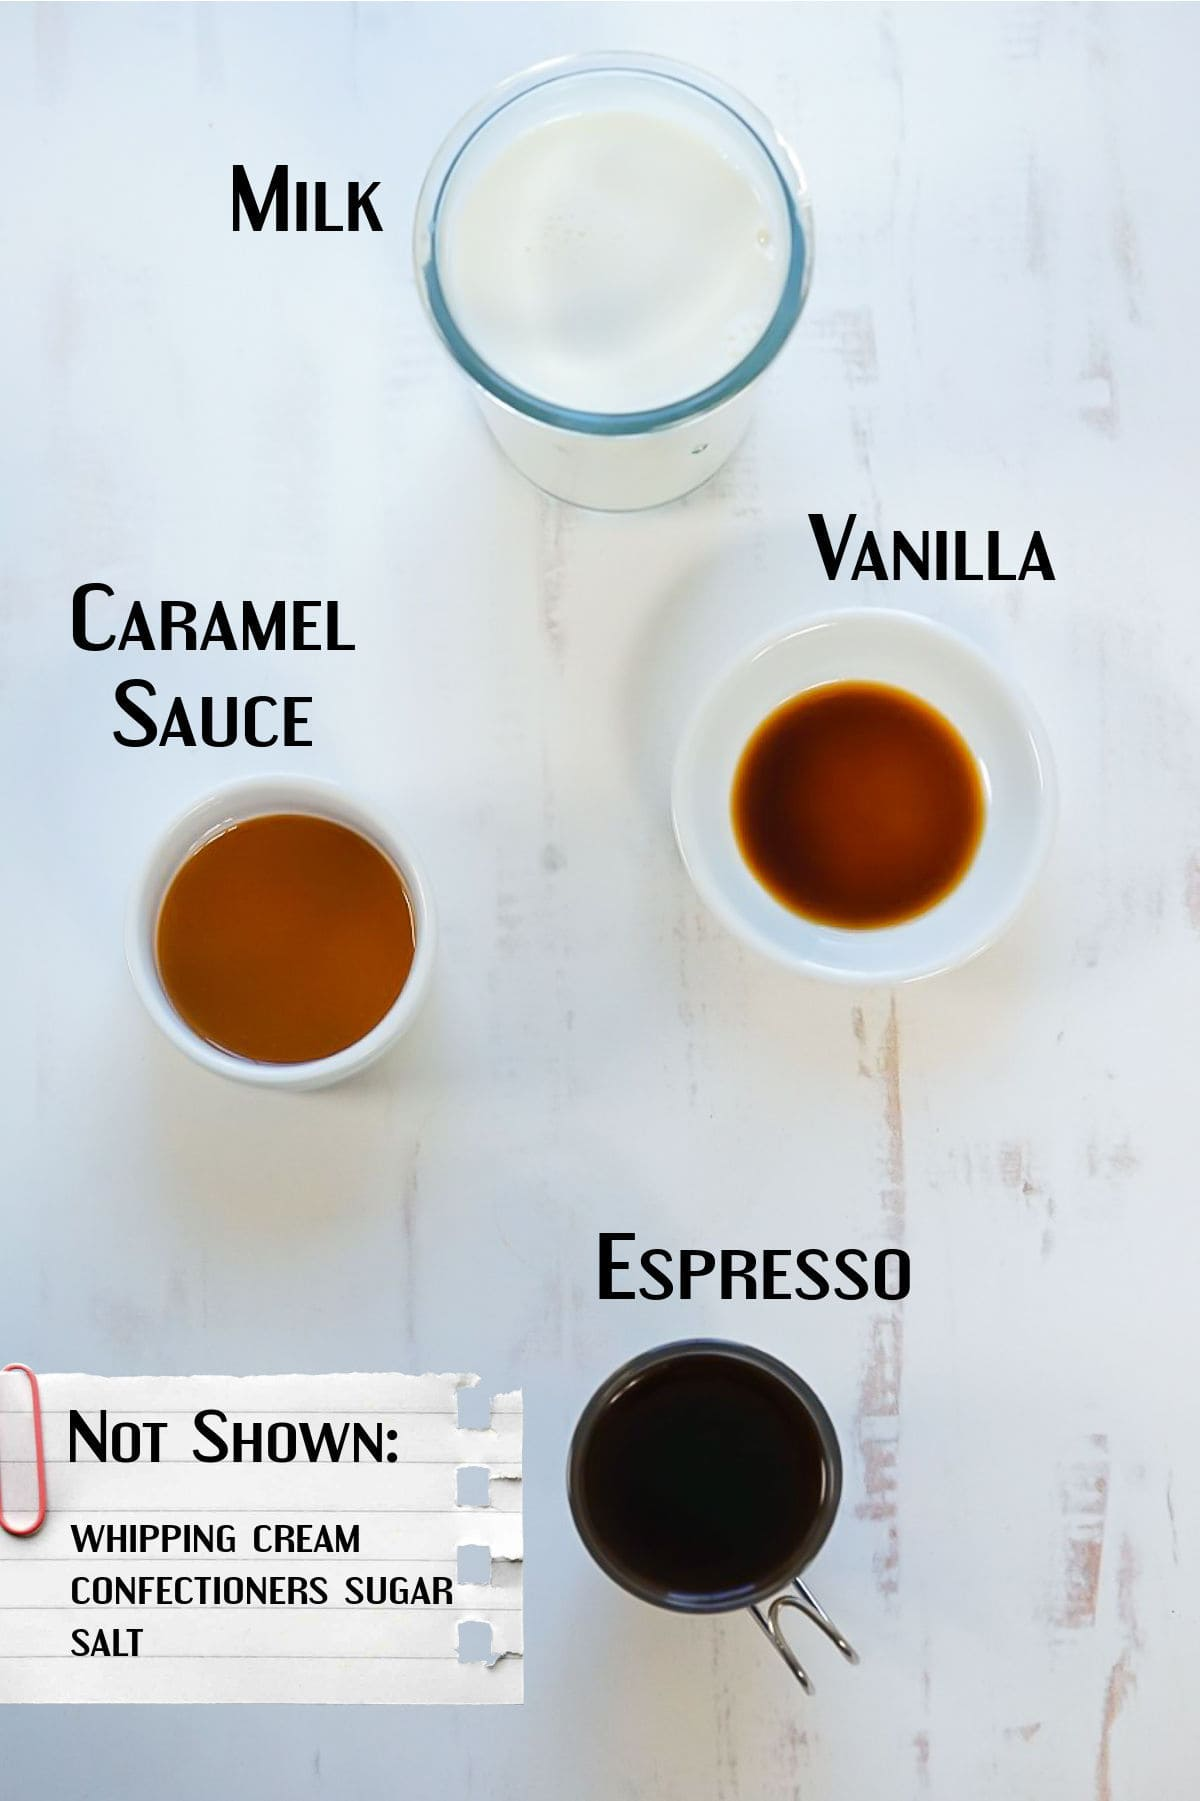 Labeled ingredients for this latte recipe.